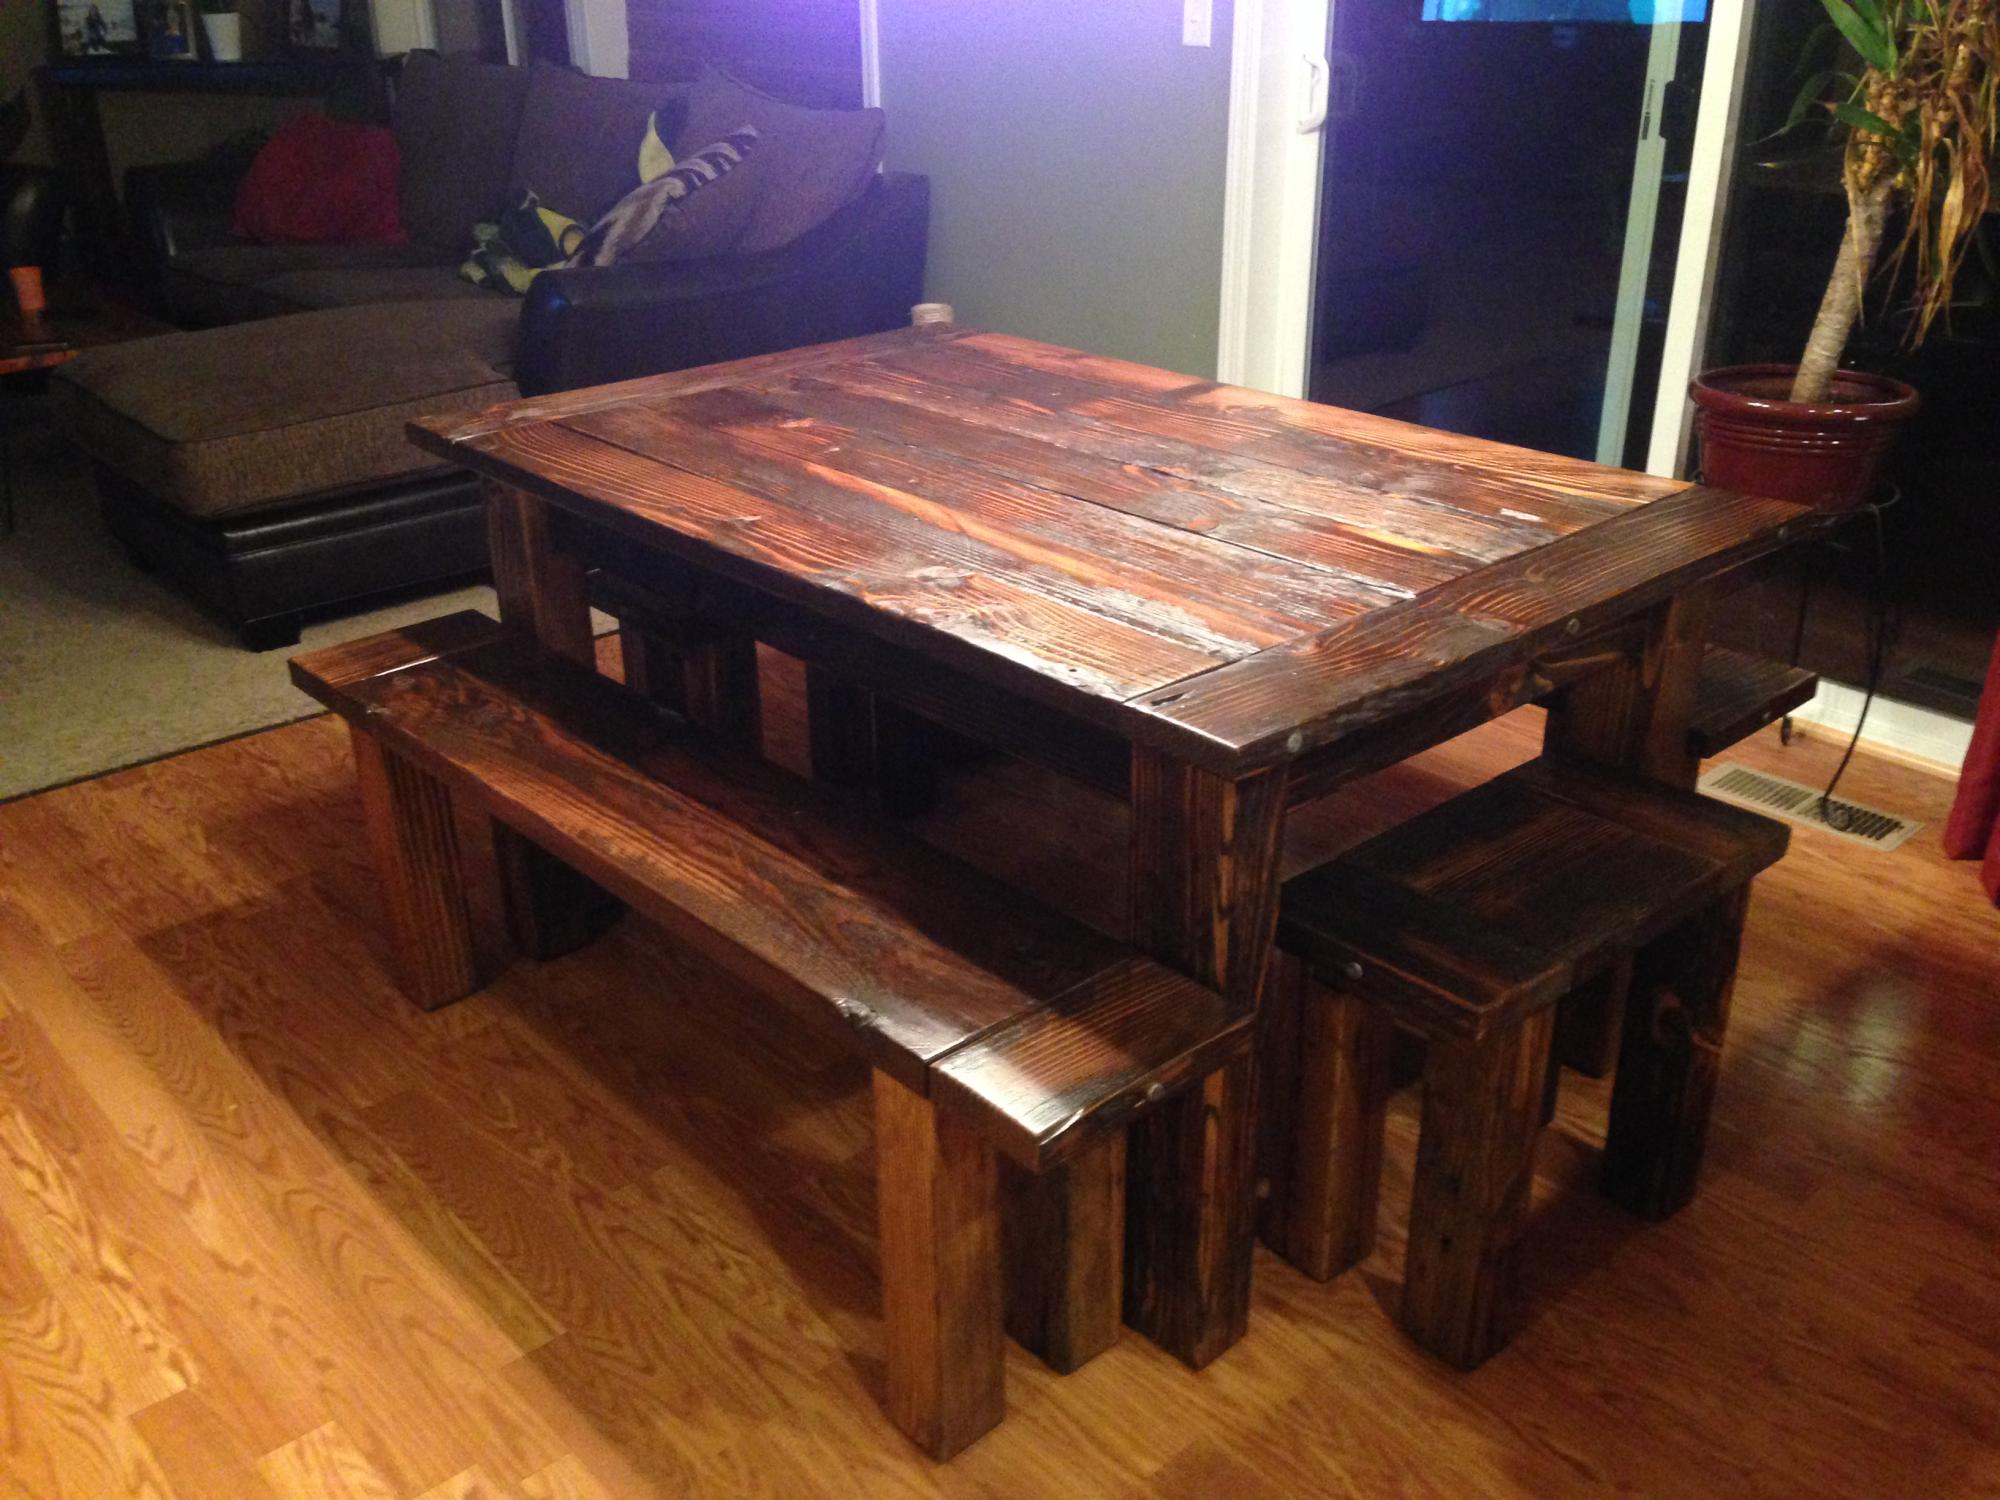 Rough cut Douglas Fir dining table with (4) benches 5'Lx3.5'W $1300